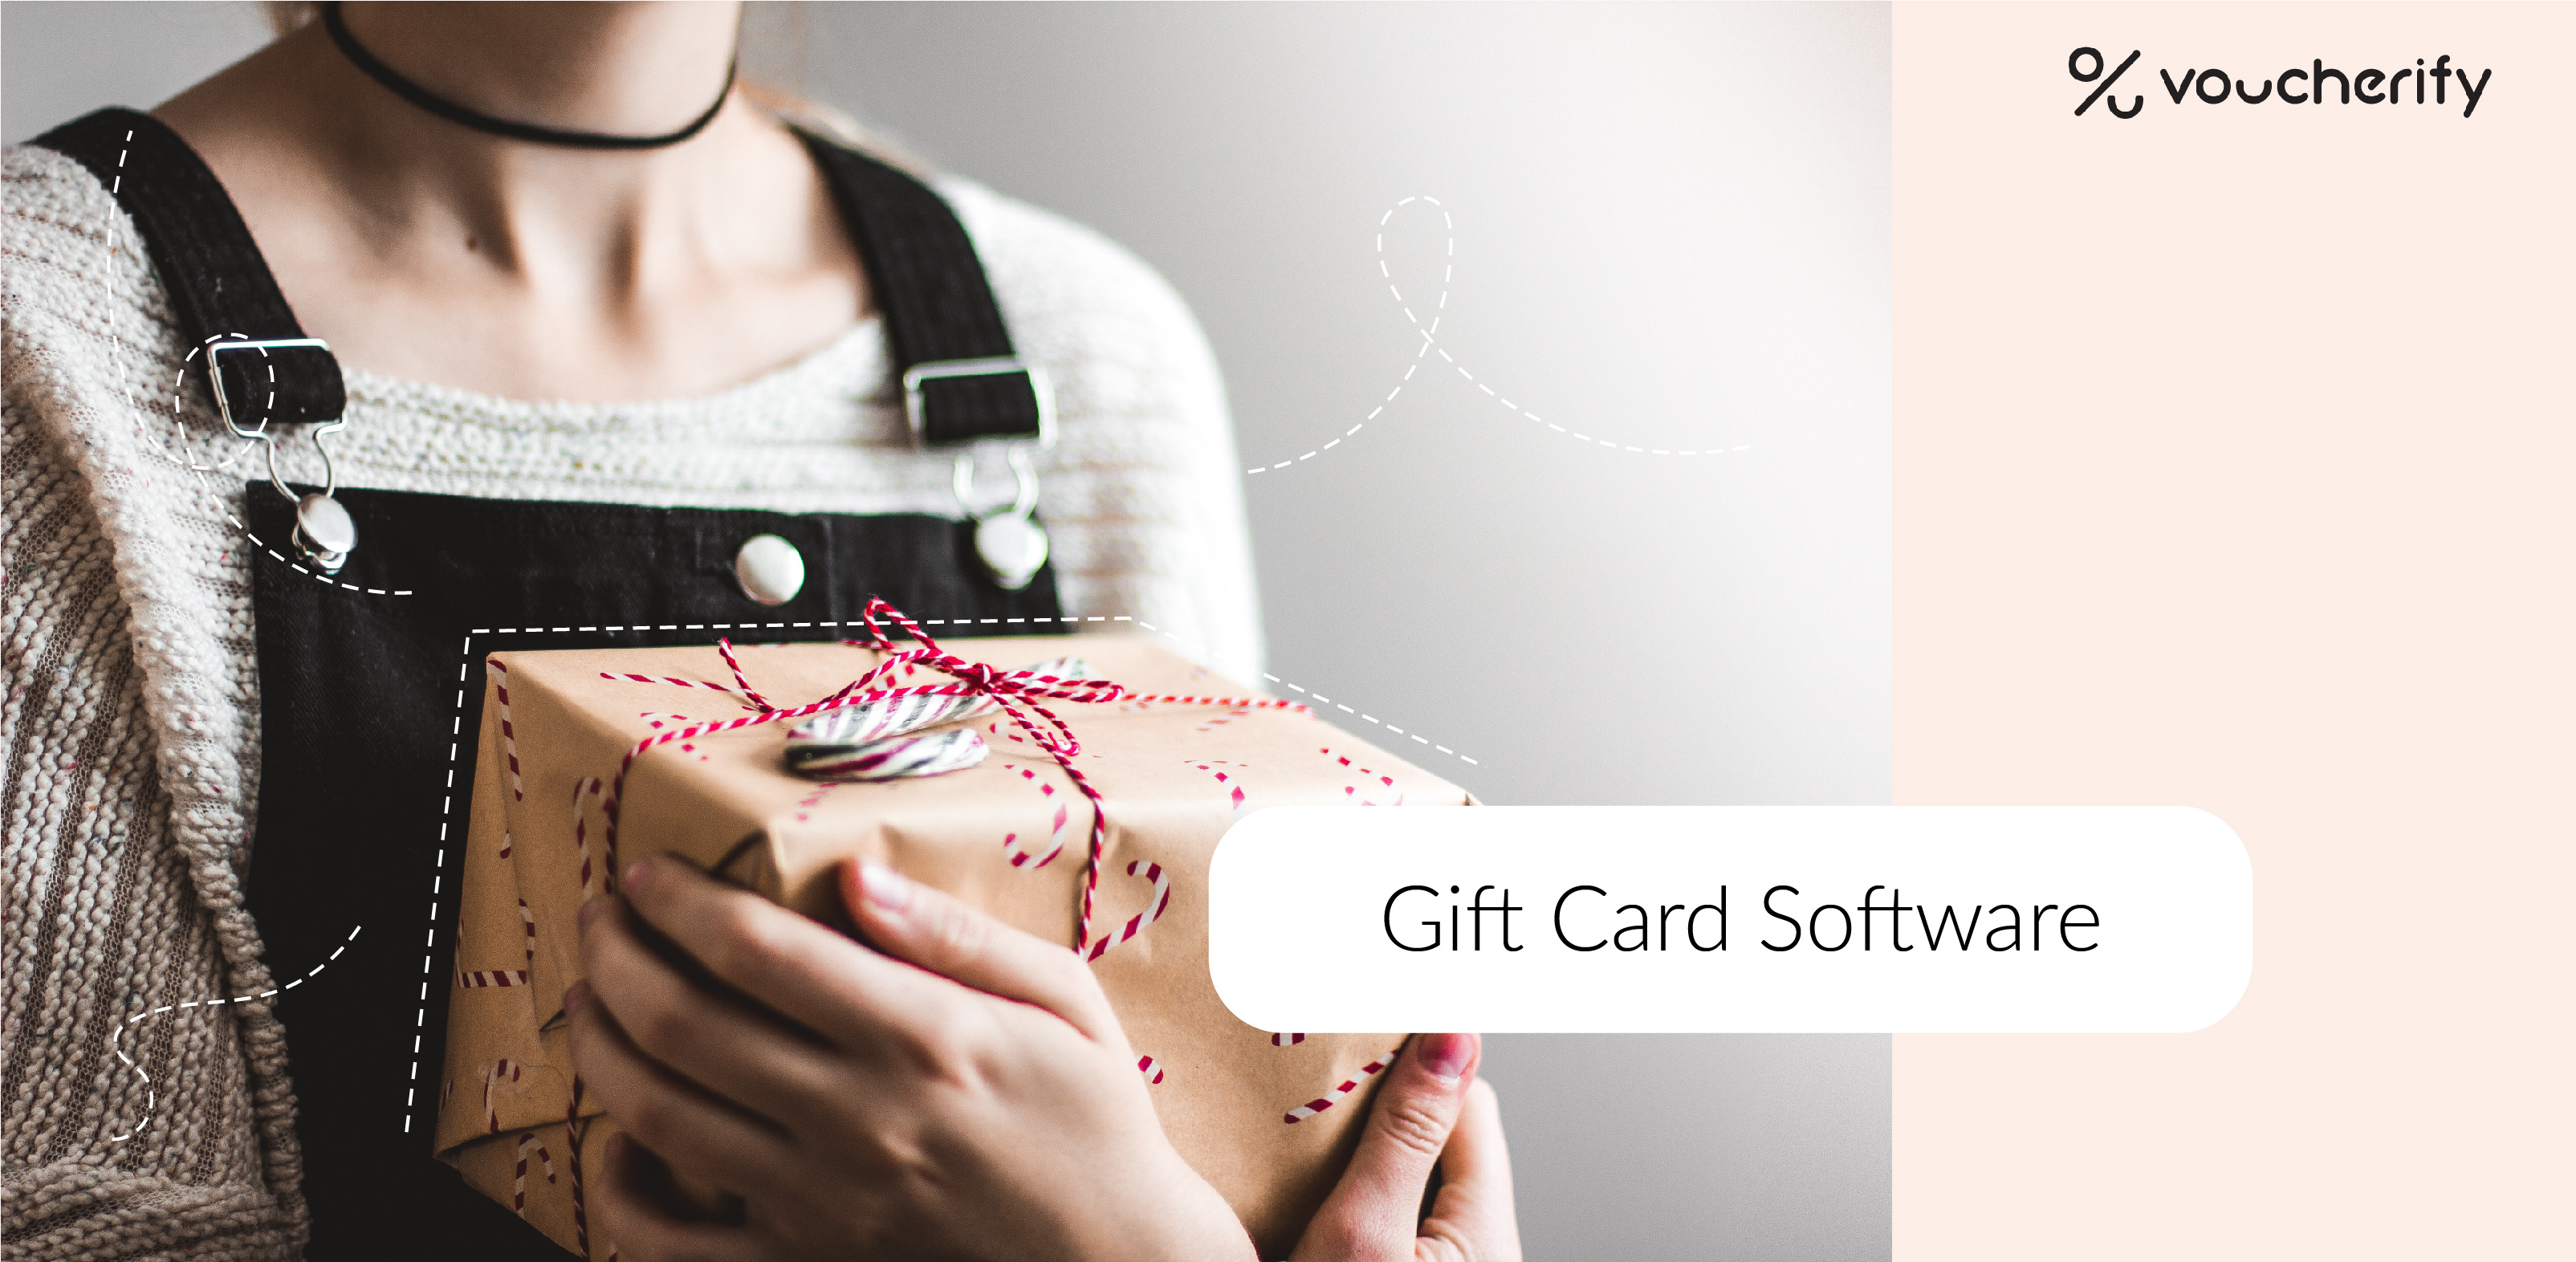 The 6 substantial features your gift cards management software should provide in 2020